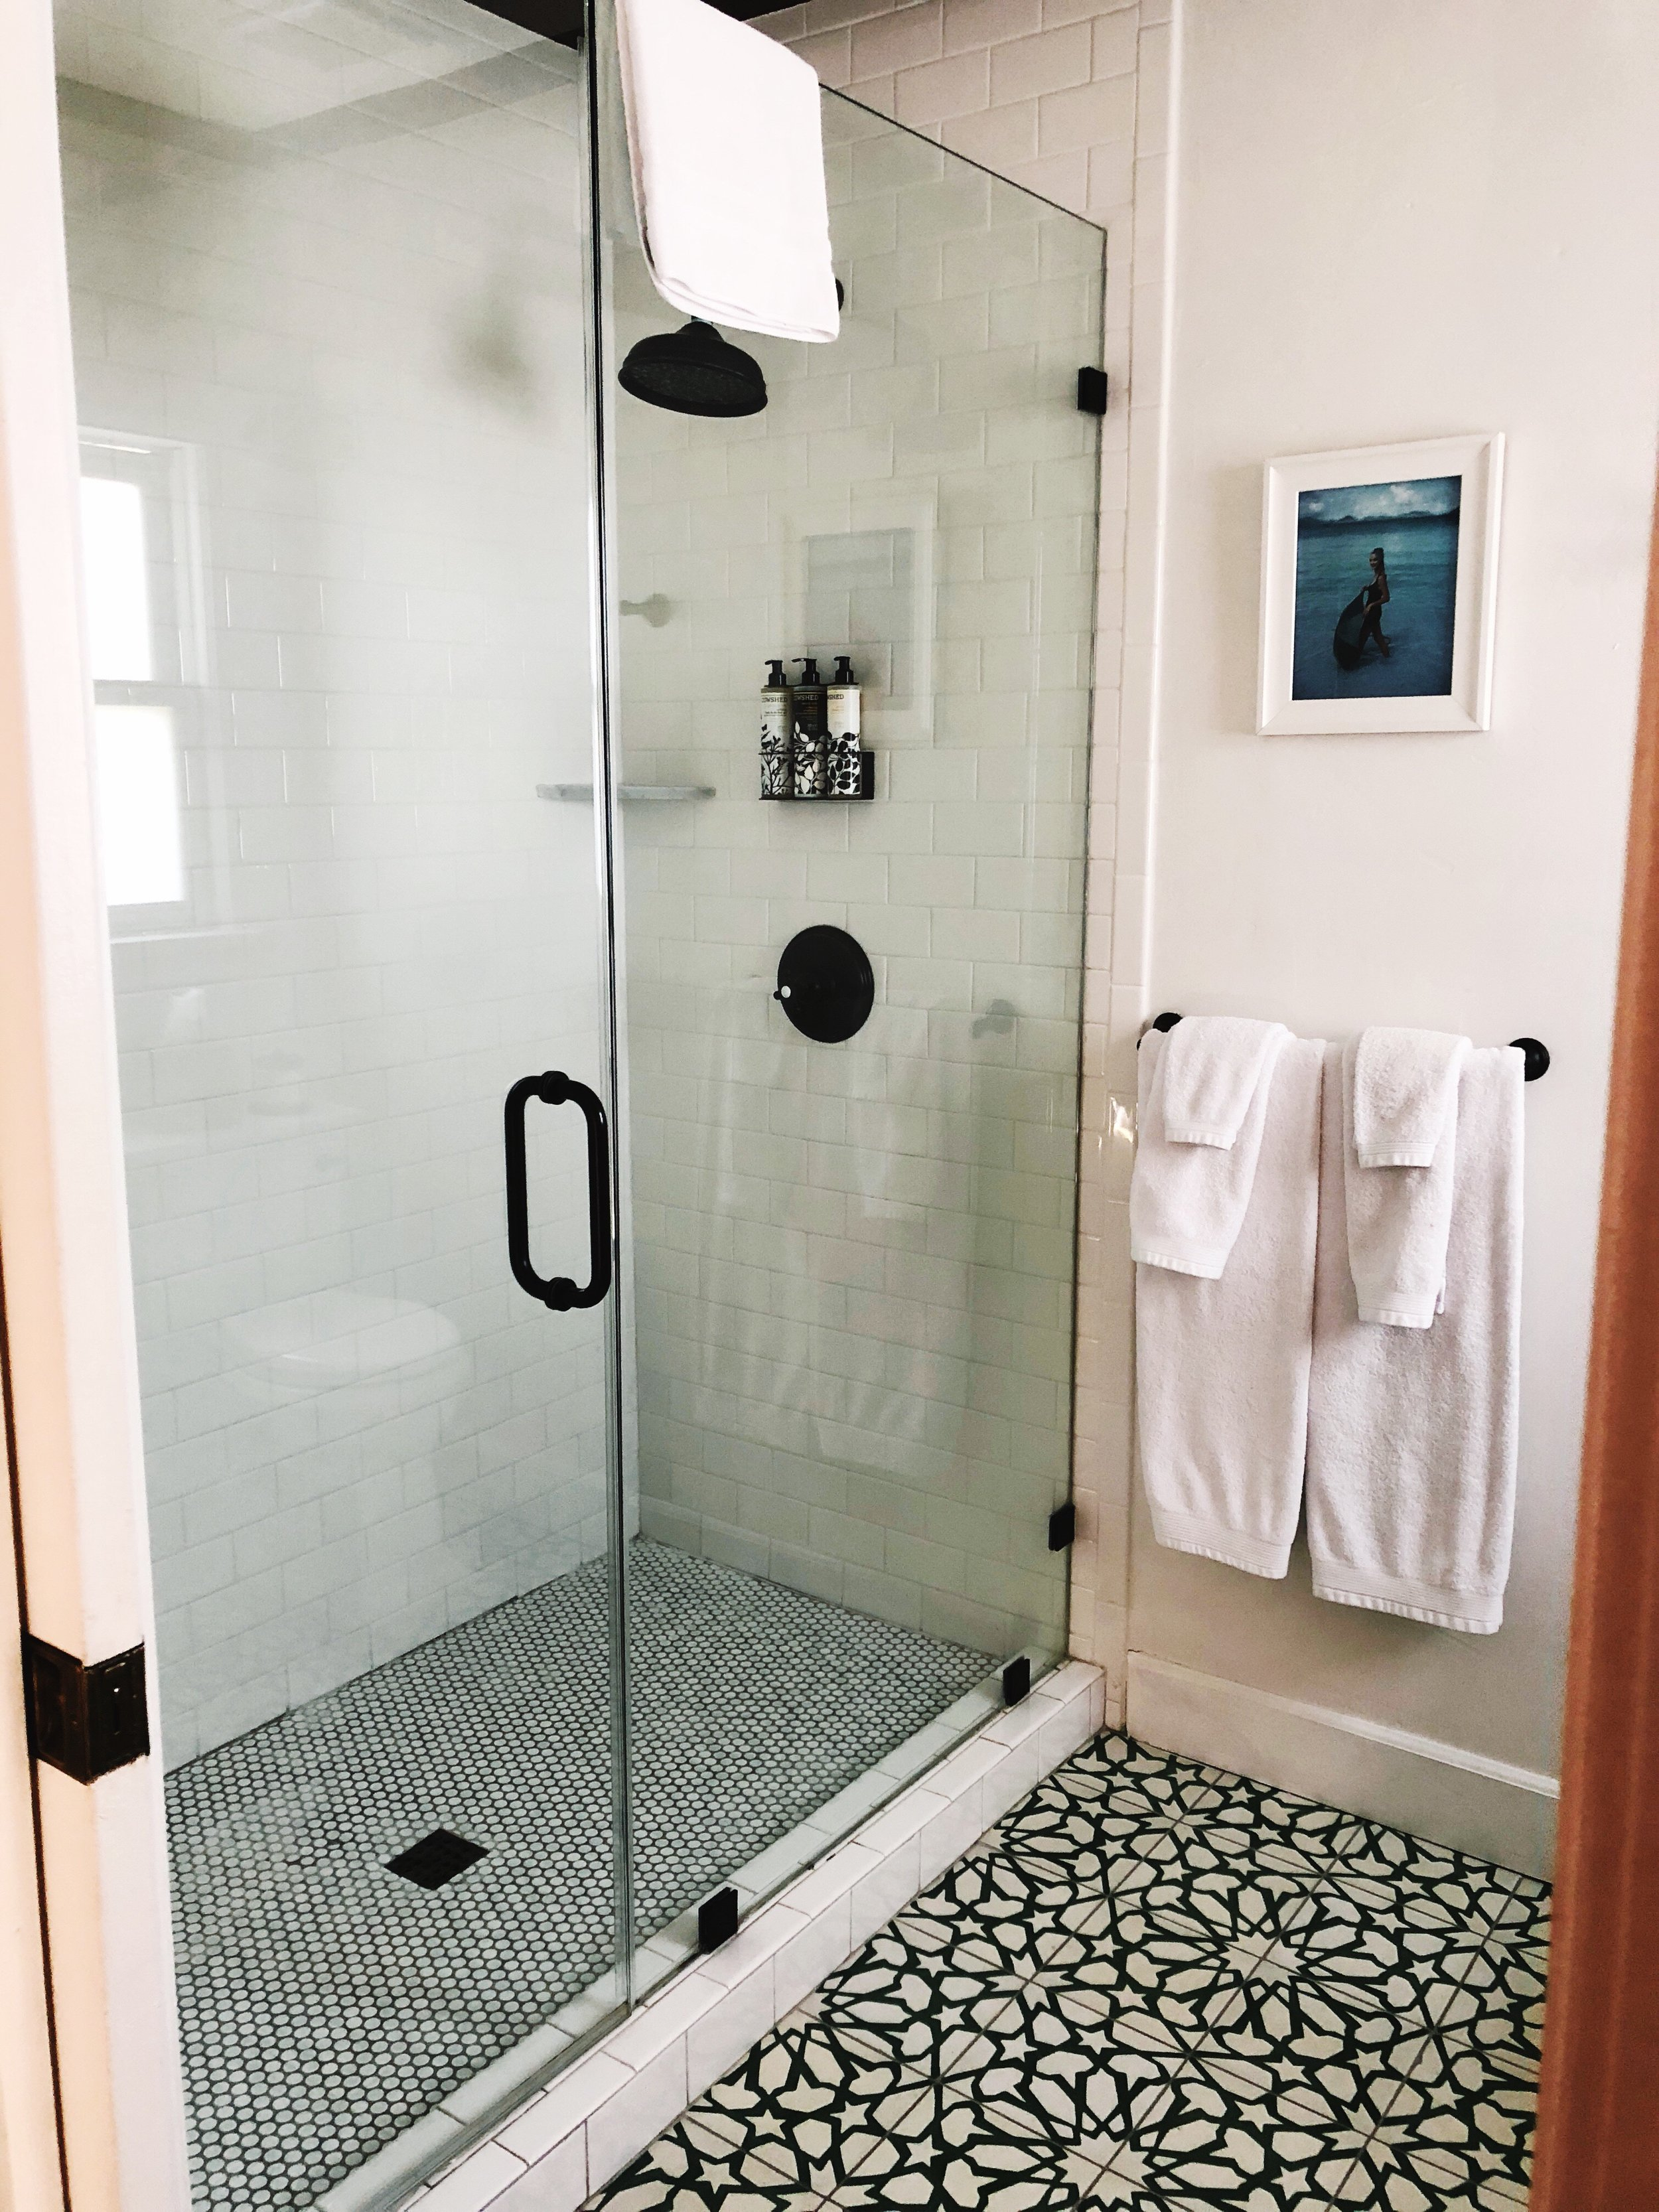 the bathroom's beautiful standing shower